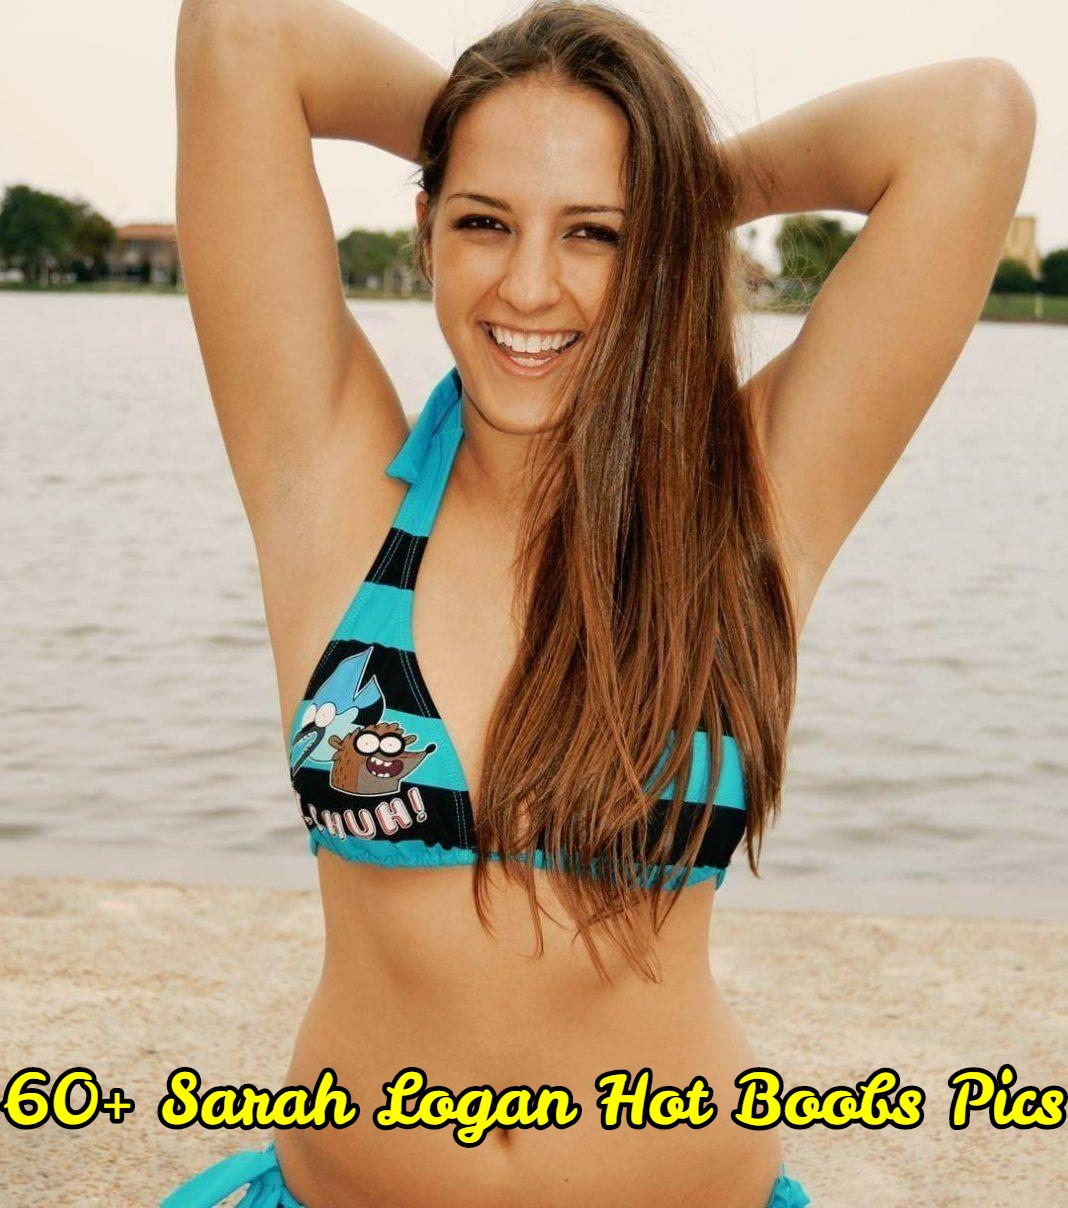 Sarah Logan hot boobs pics